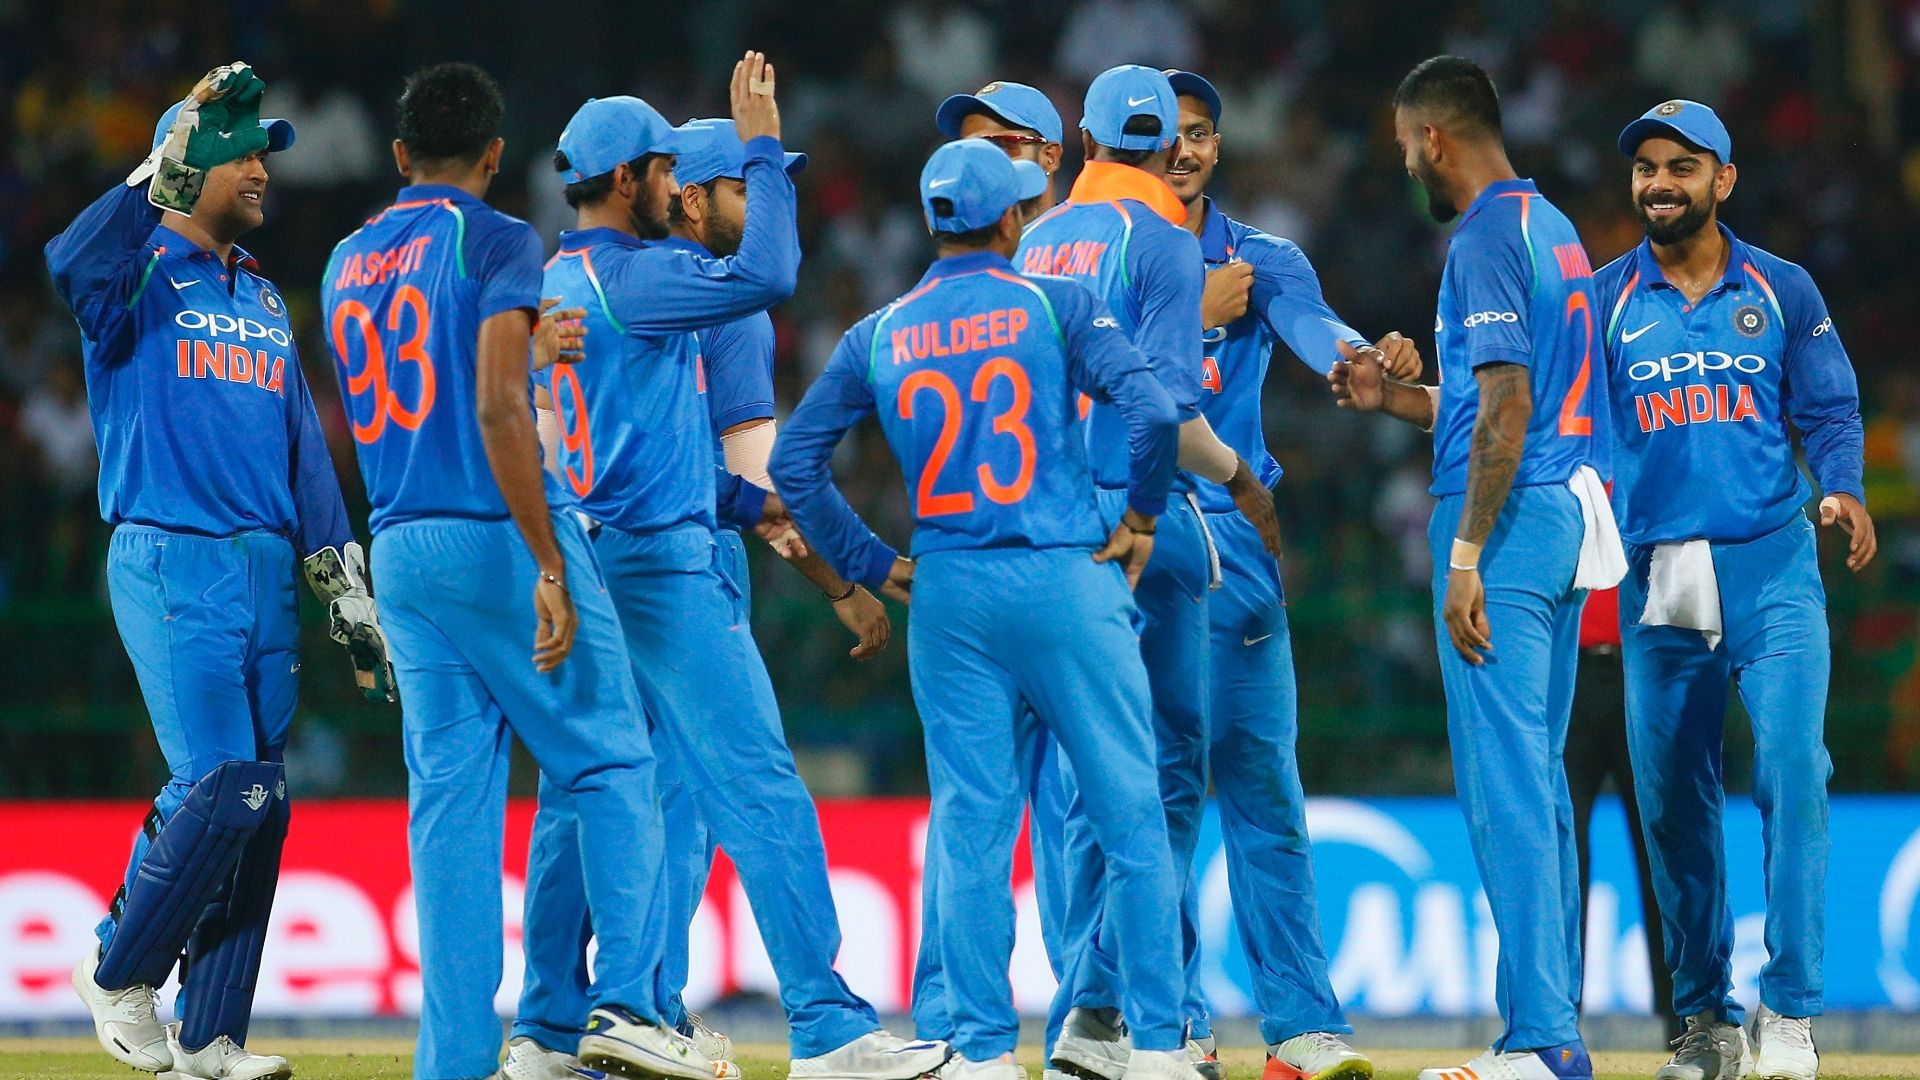 article on cricket over hyped in india India chased through a 110 runs partnership between openers lokesh rahul (60) and ambati rayudu (57) but despite a valiant effort by ravindra jadeja, afghanistan held india to a tie.